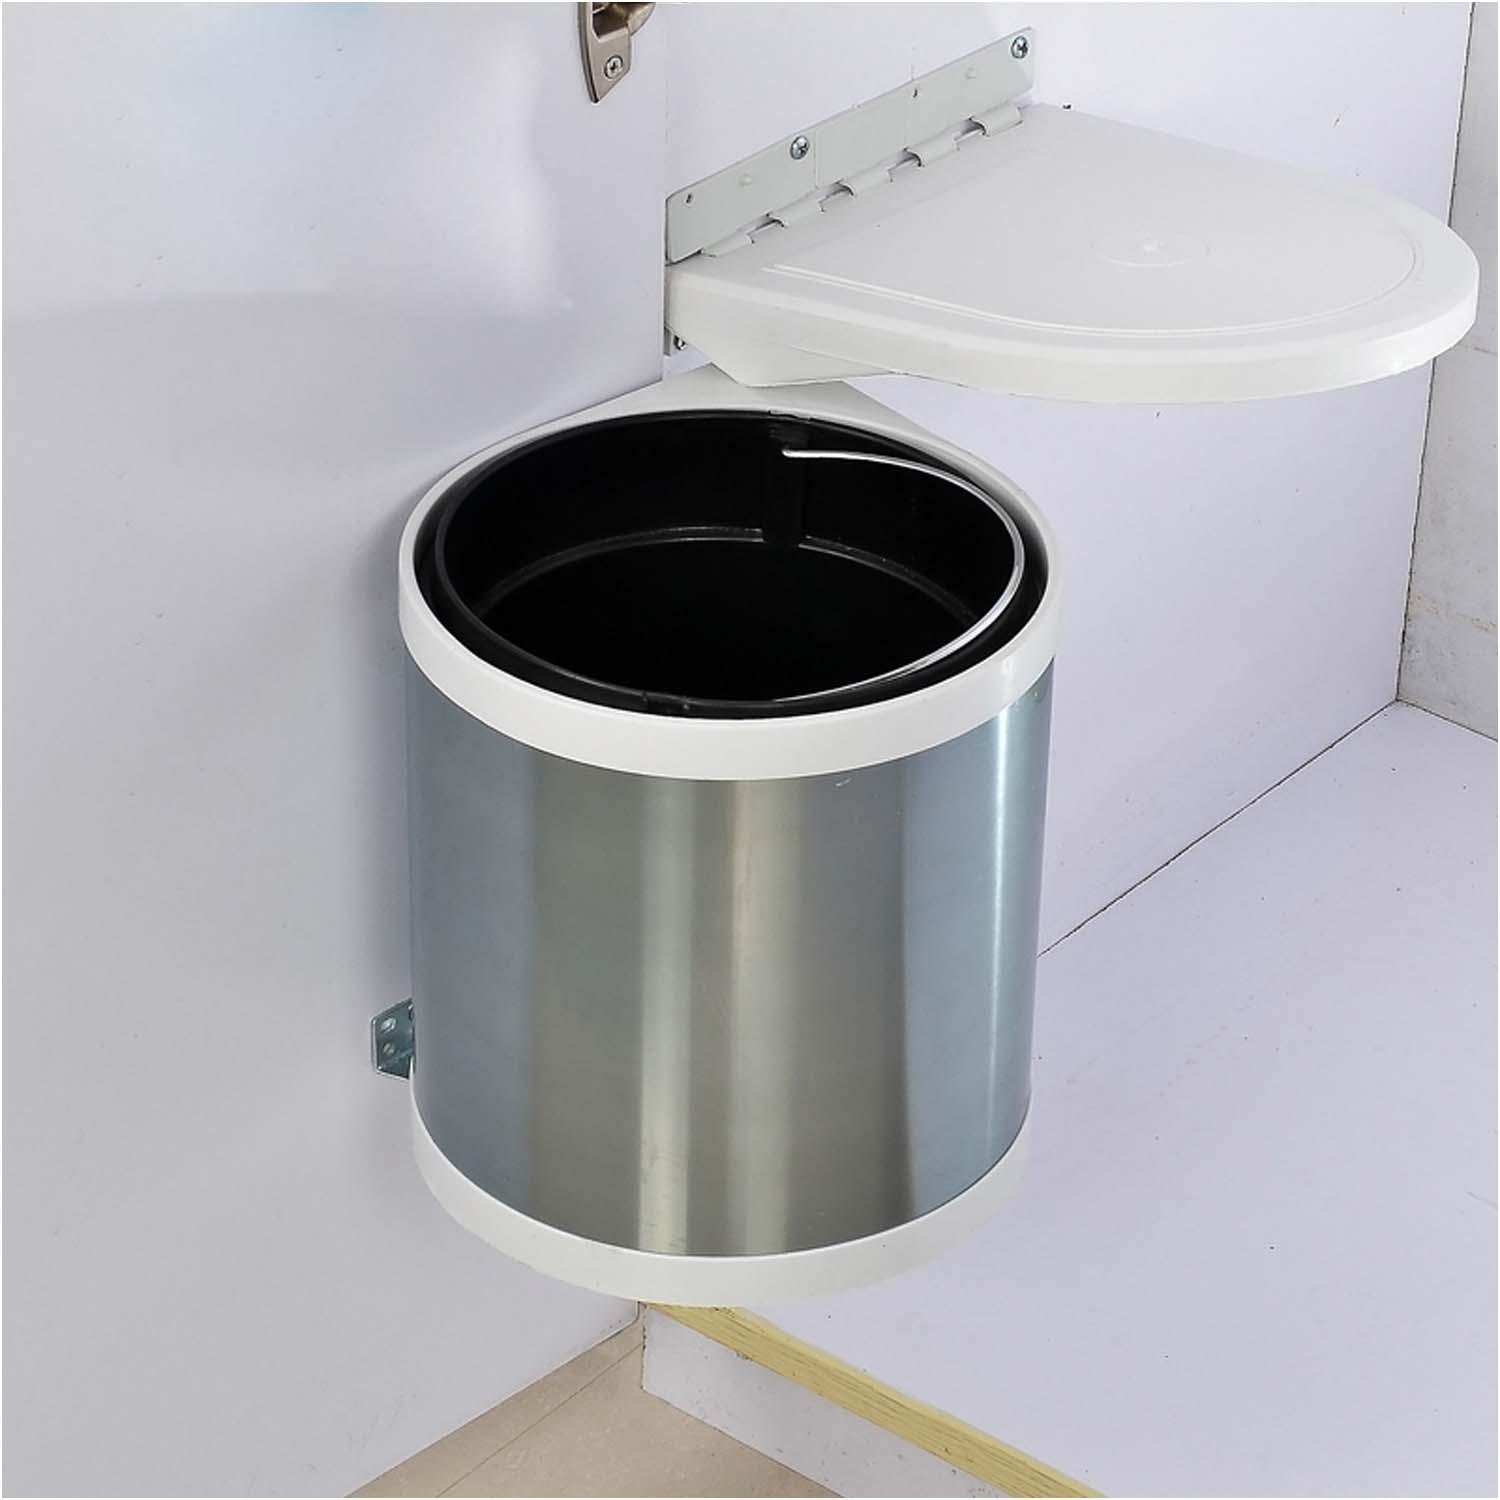 OOFYHOME Built-in covered trash can, stainless steel kitchen built-in trash cabinets hidden open door hanging door by OOFYHOME